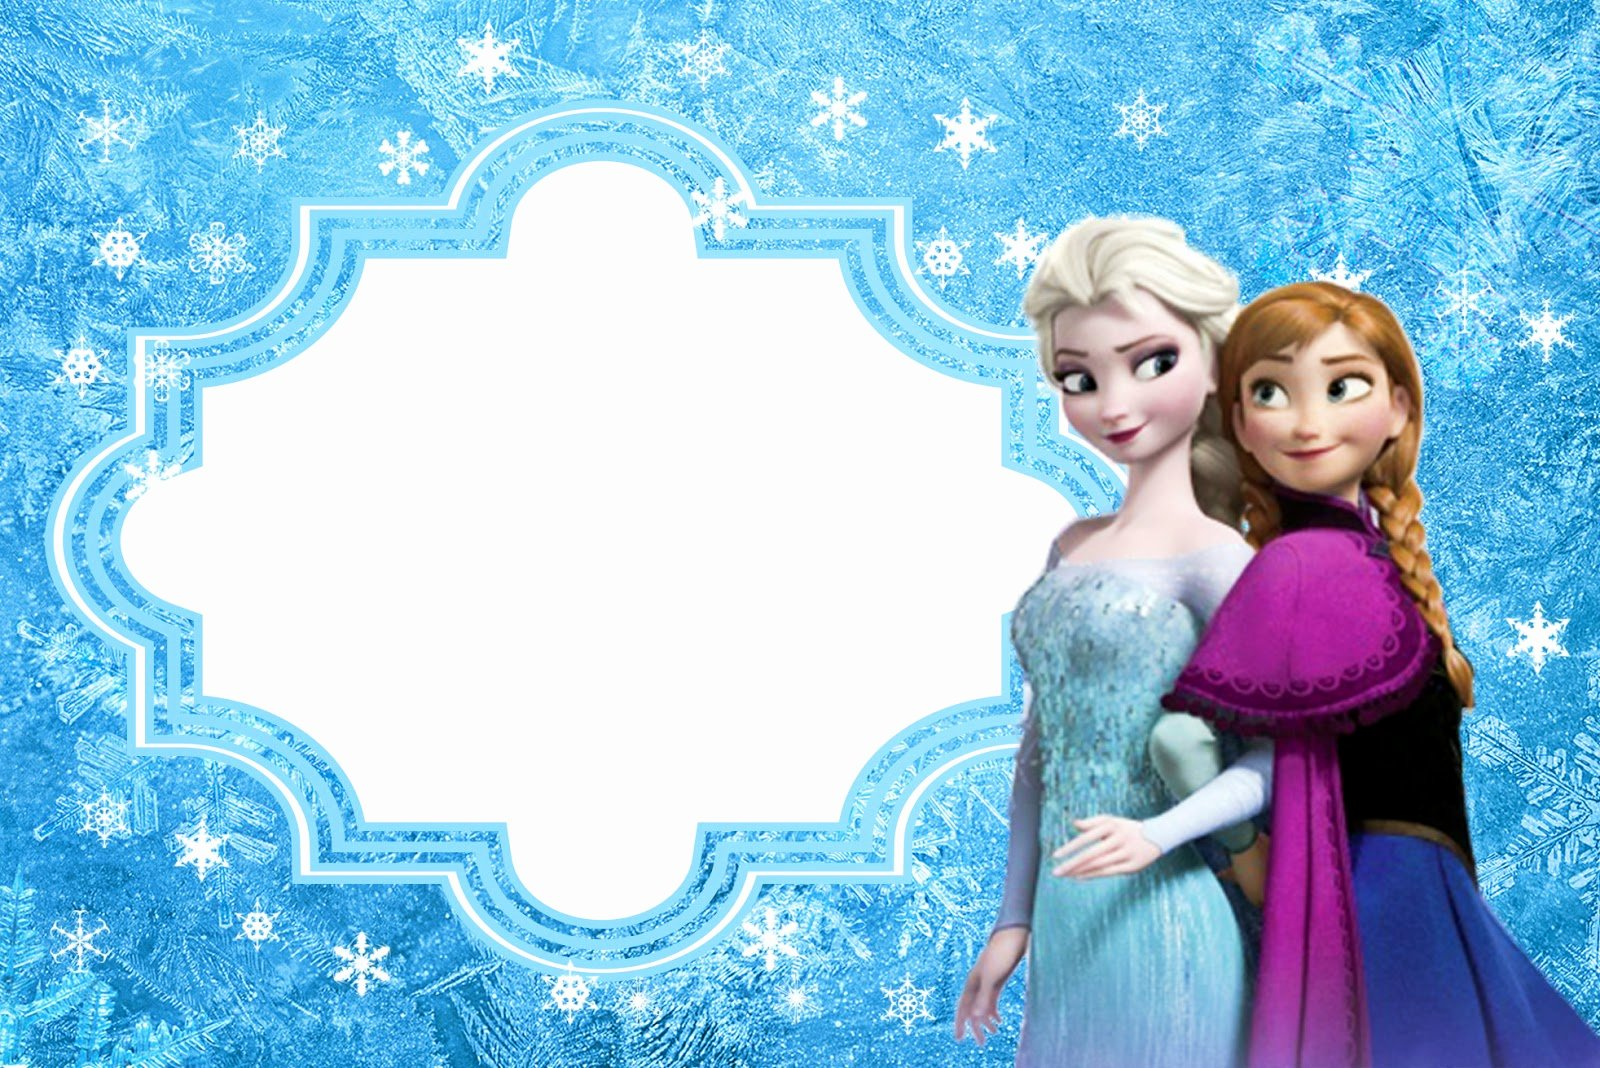 Free Frozen Invite Template Elegant Frozen Free Printable Cards or Party Invitations Oh My